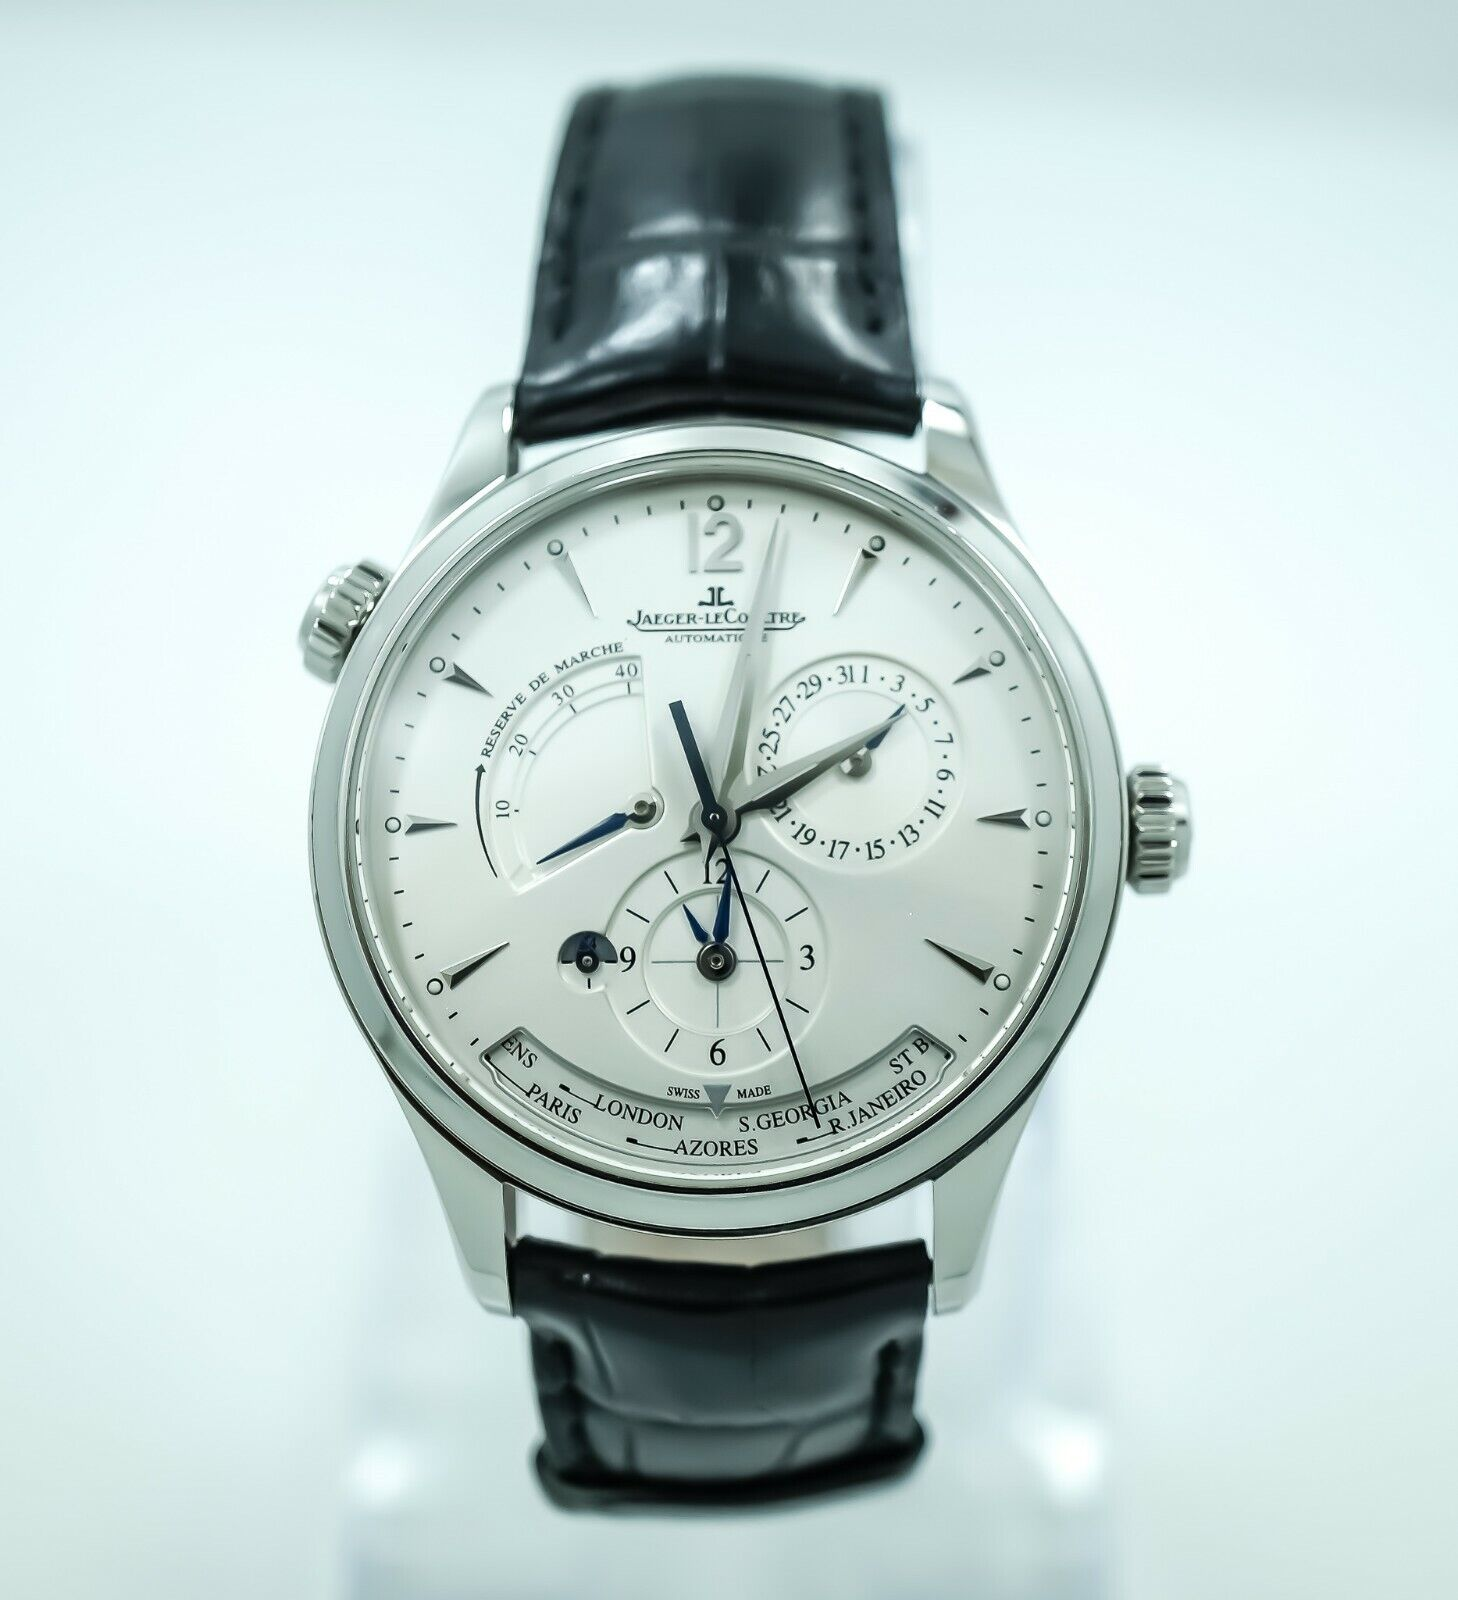 Jaeger LeCoultre Master Geographic ref 176.8.29.s 39mm - watch picture 1